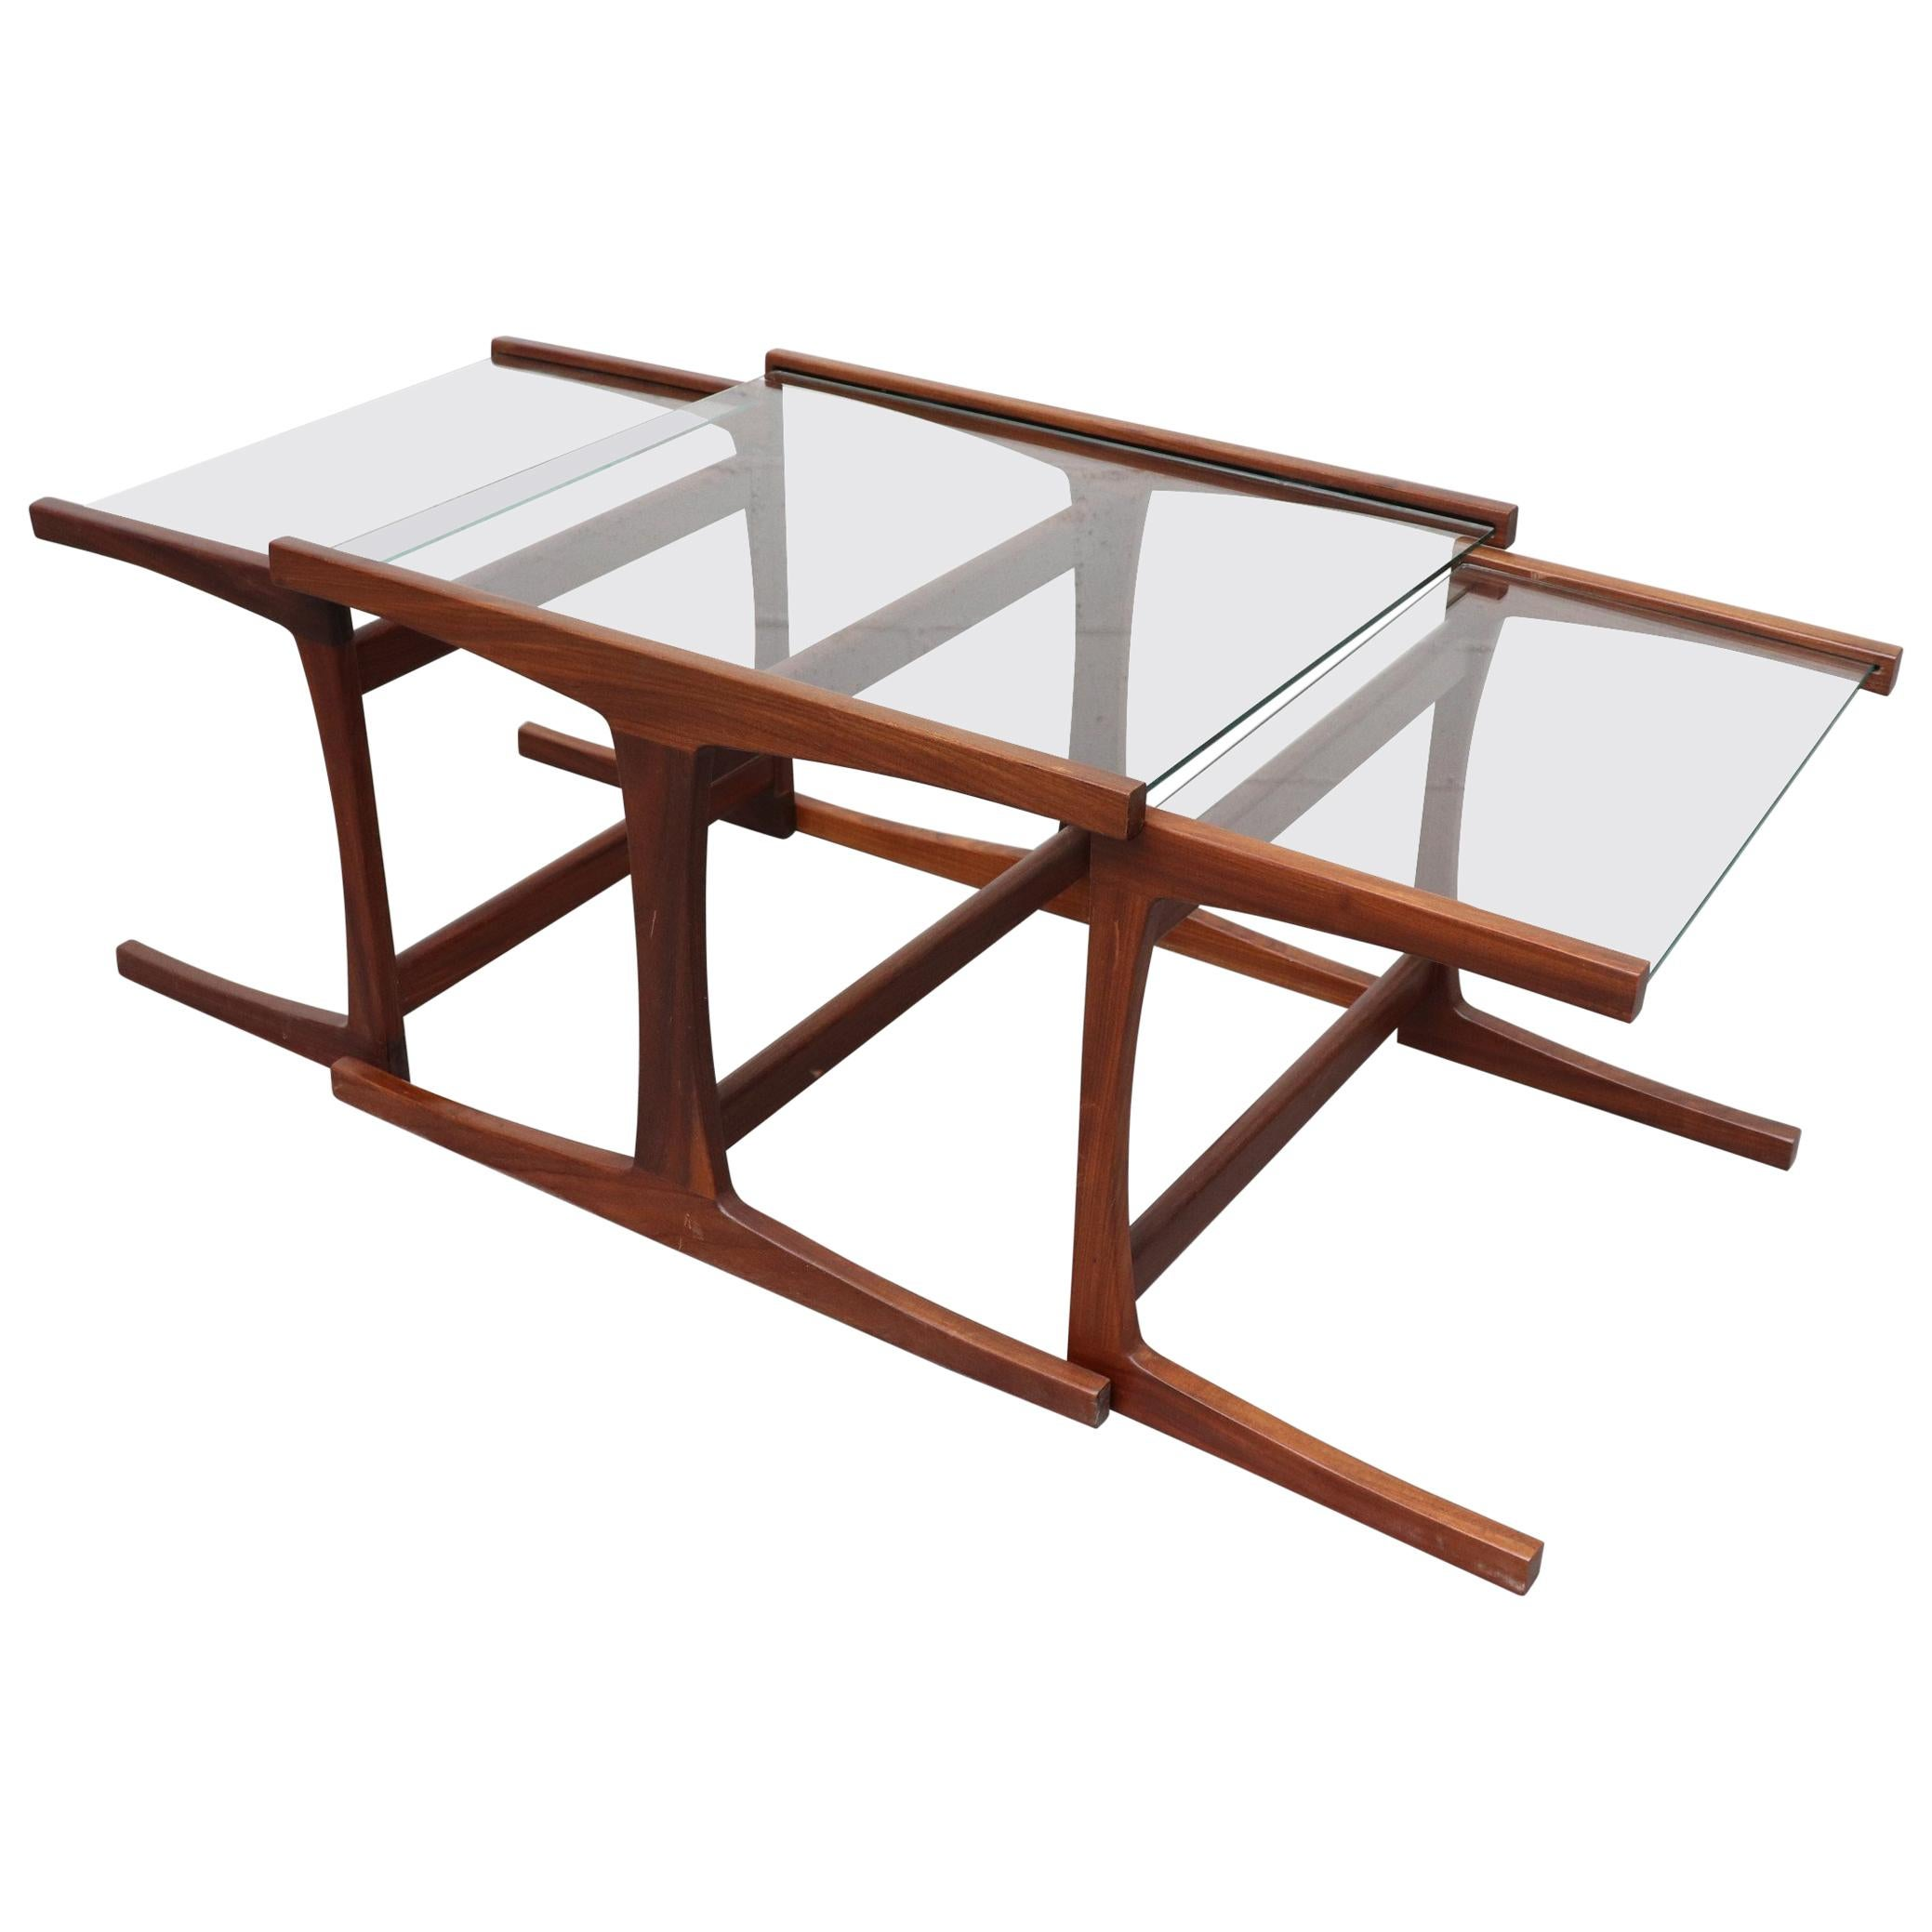 Glass Nesting Tables Shogun Style Teak And Glass Nesting Tables